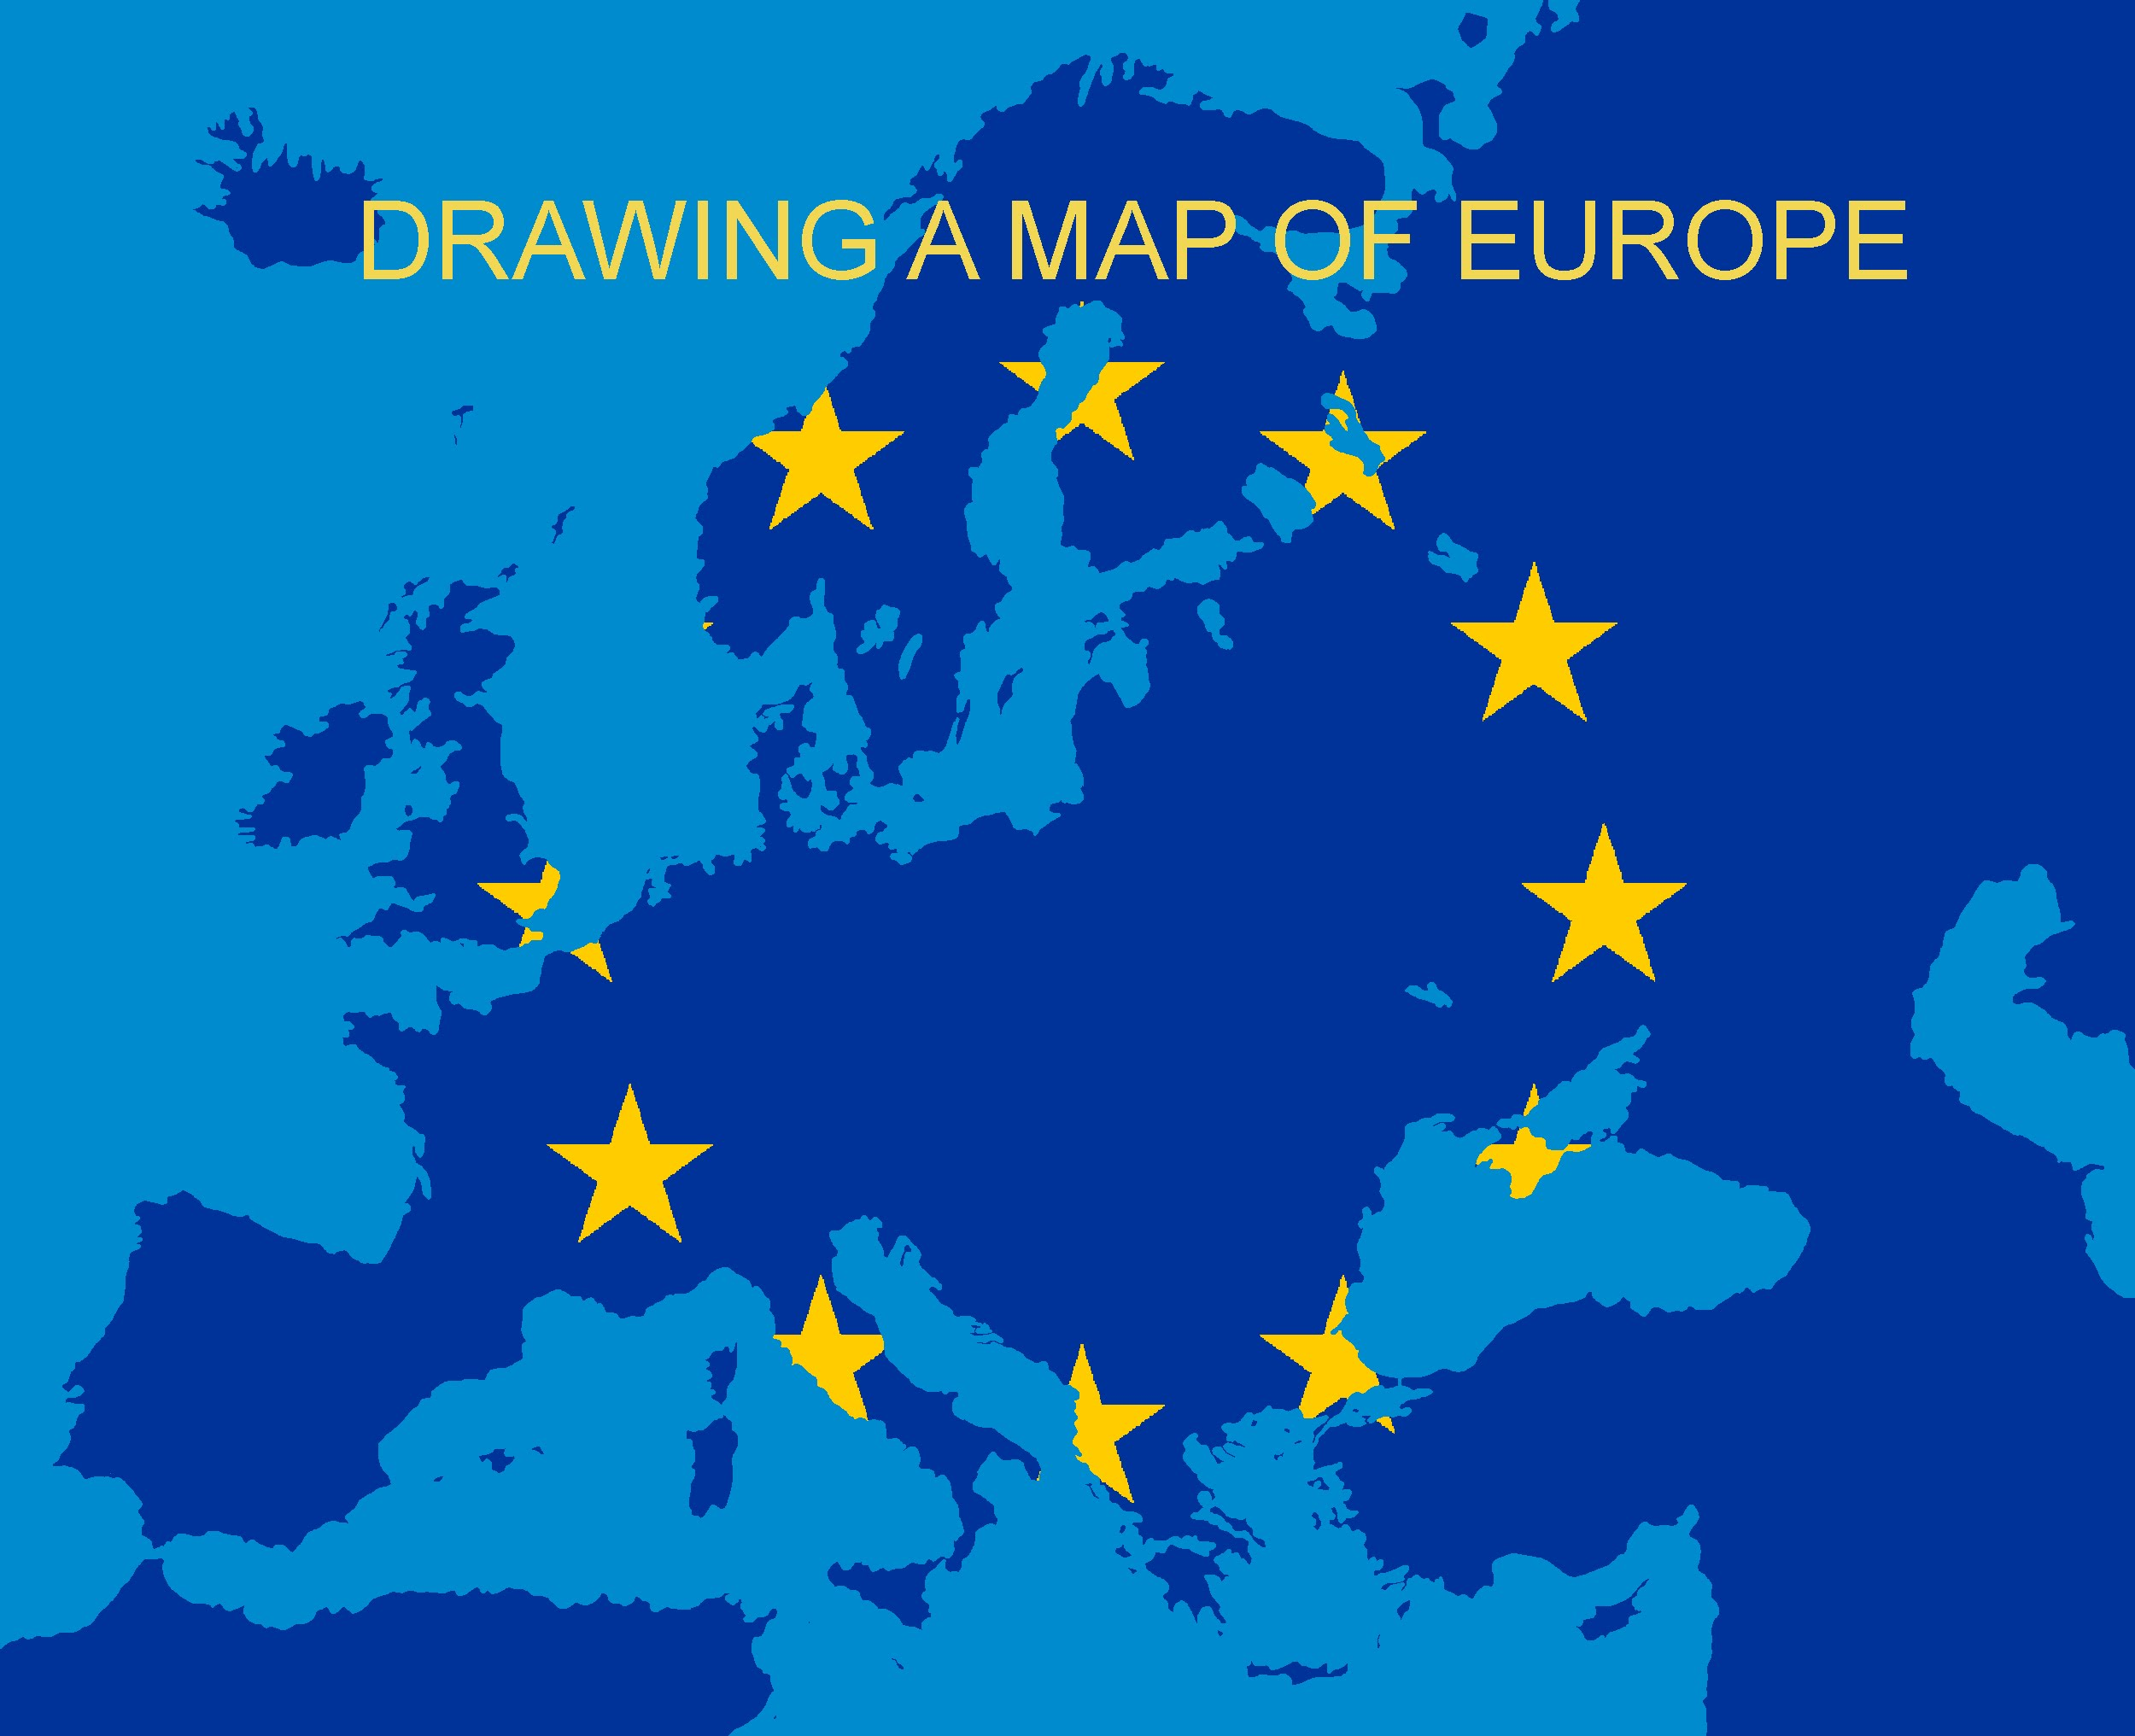 Map Of Europe Blank No Borders.Map Of Europe Drawing At Getdrawings Com Free For Personal Use Map